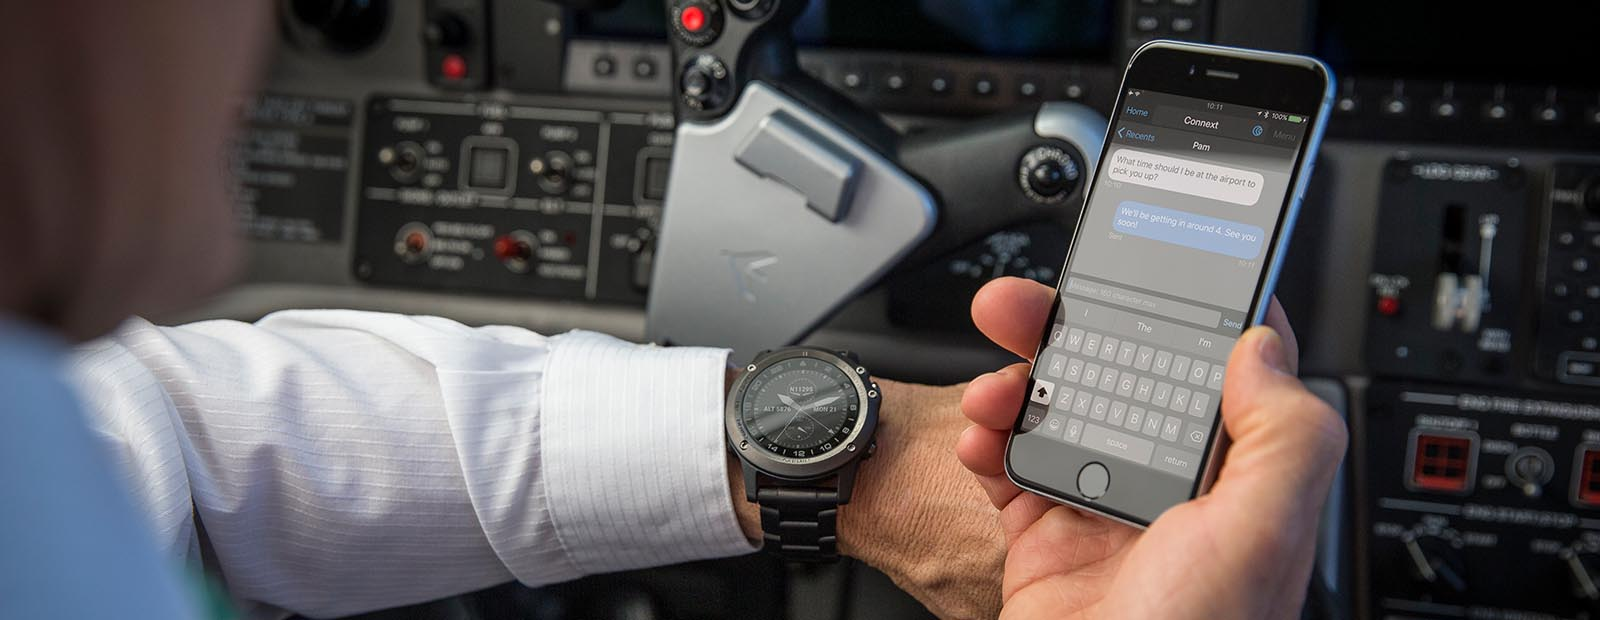 Business Aviation – Datalinks & Connectivity